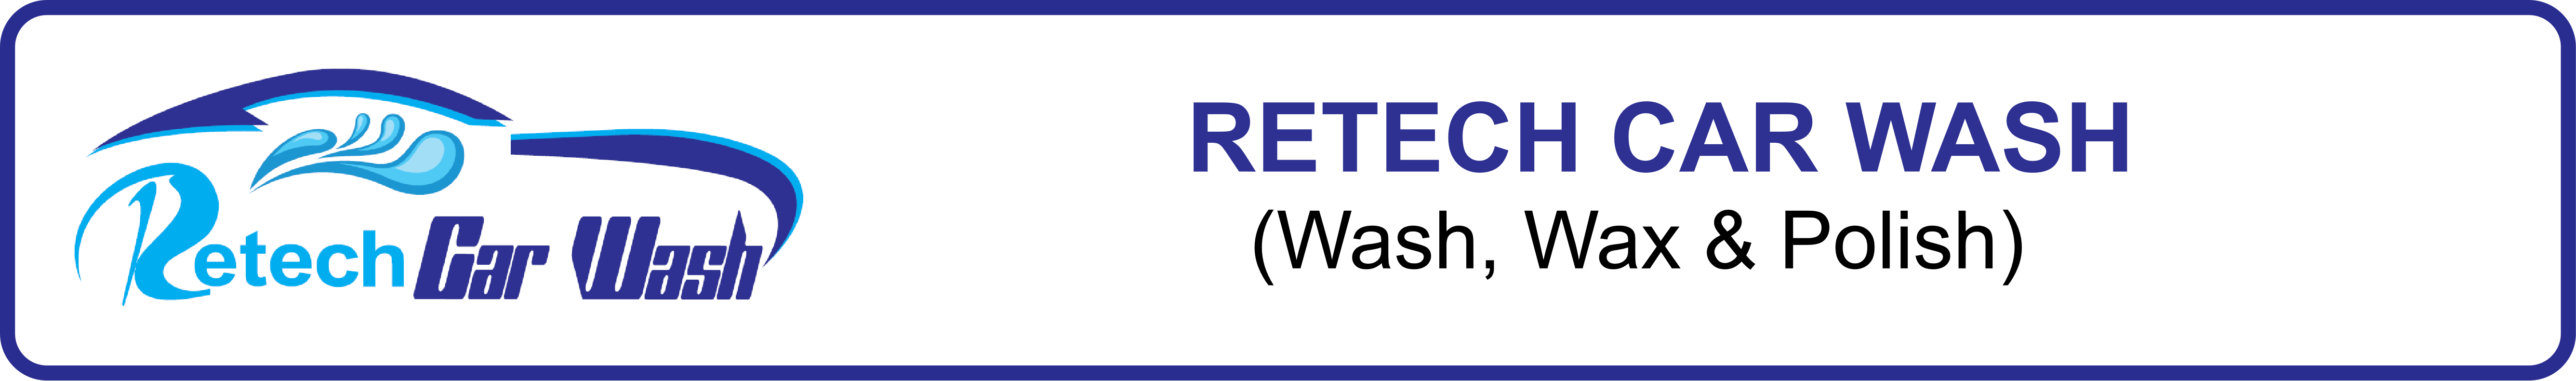 retech-car-wash